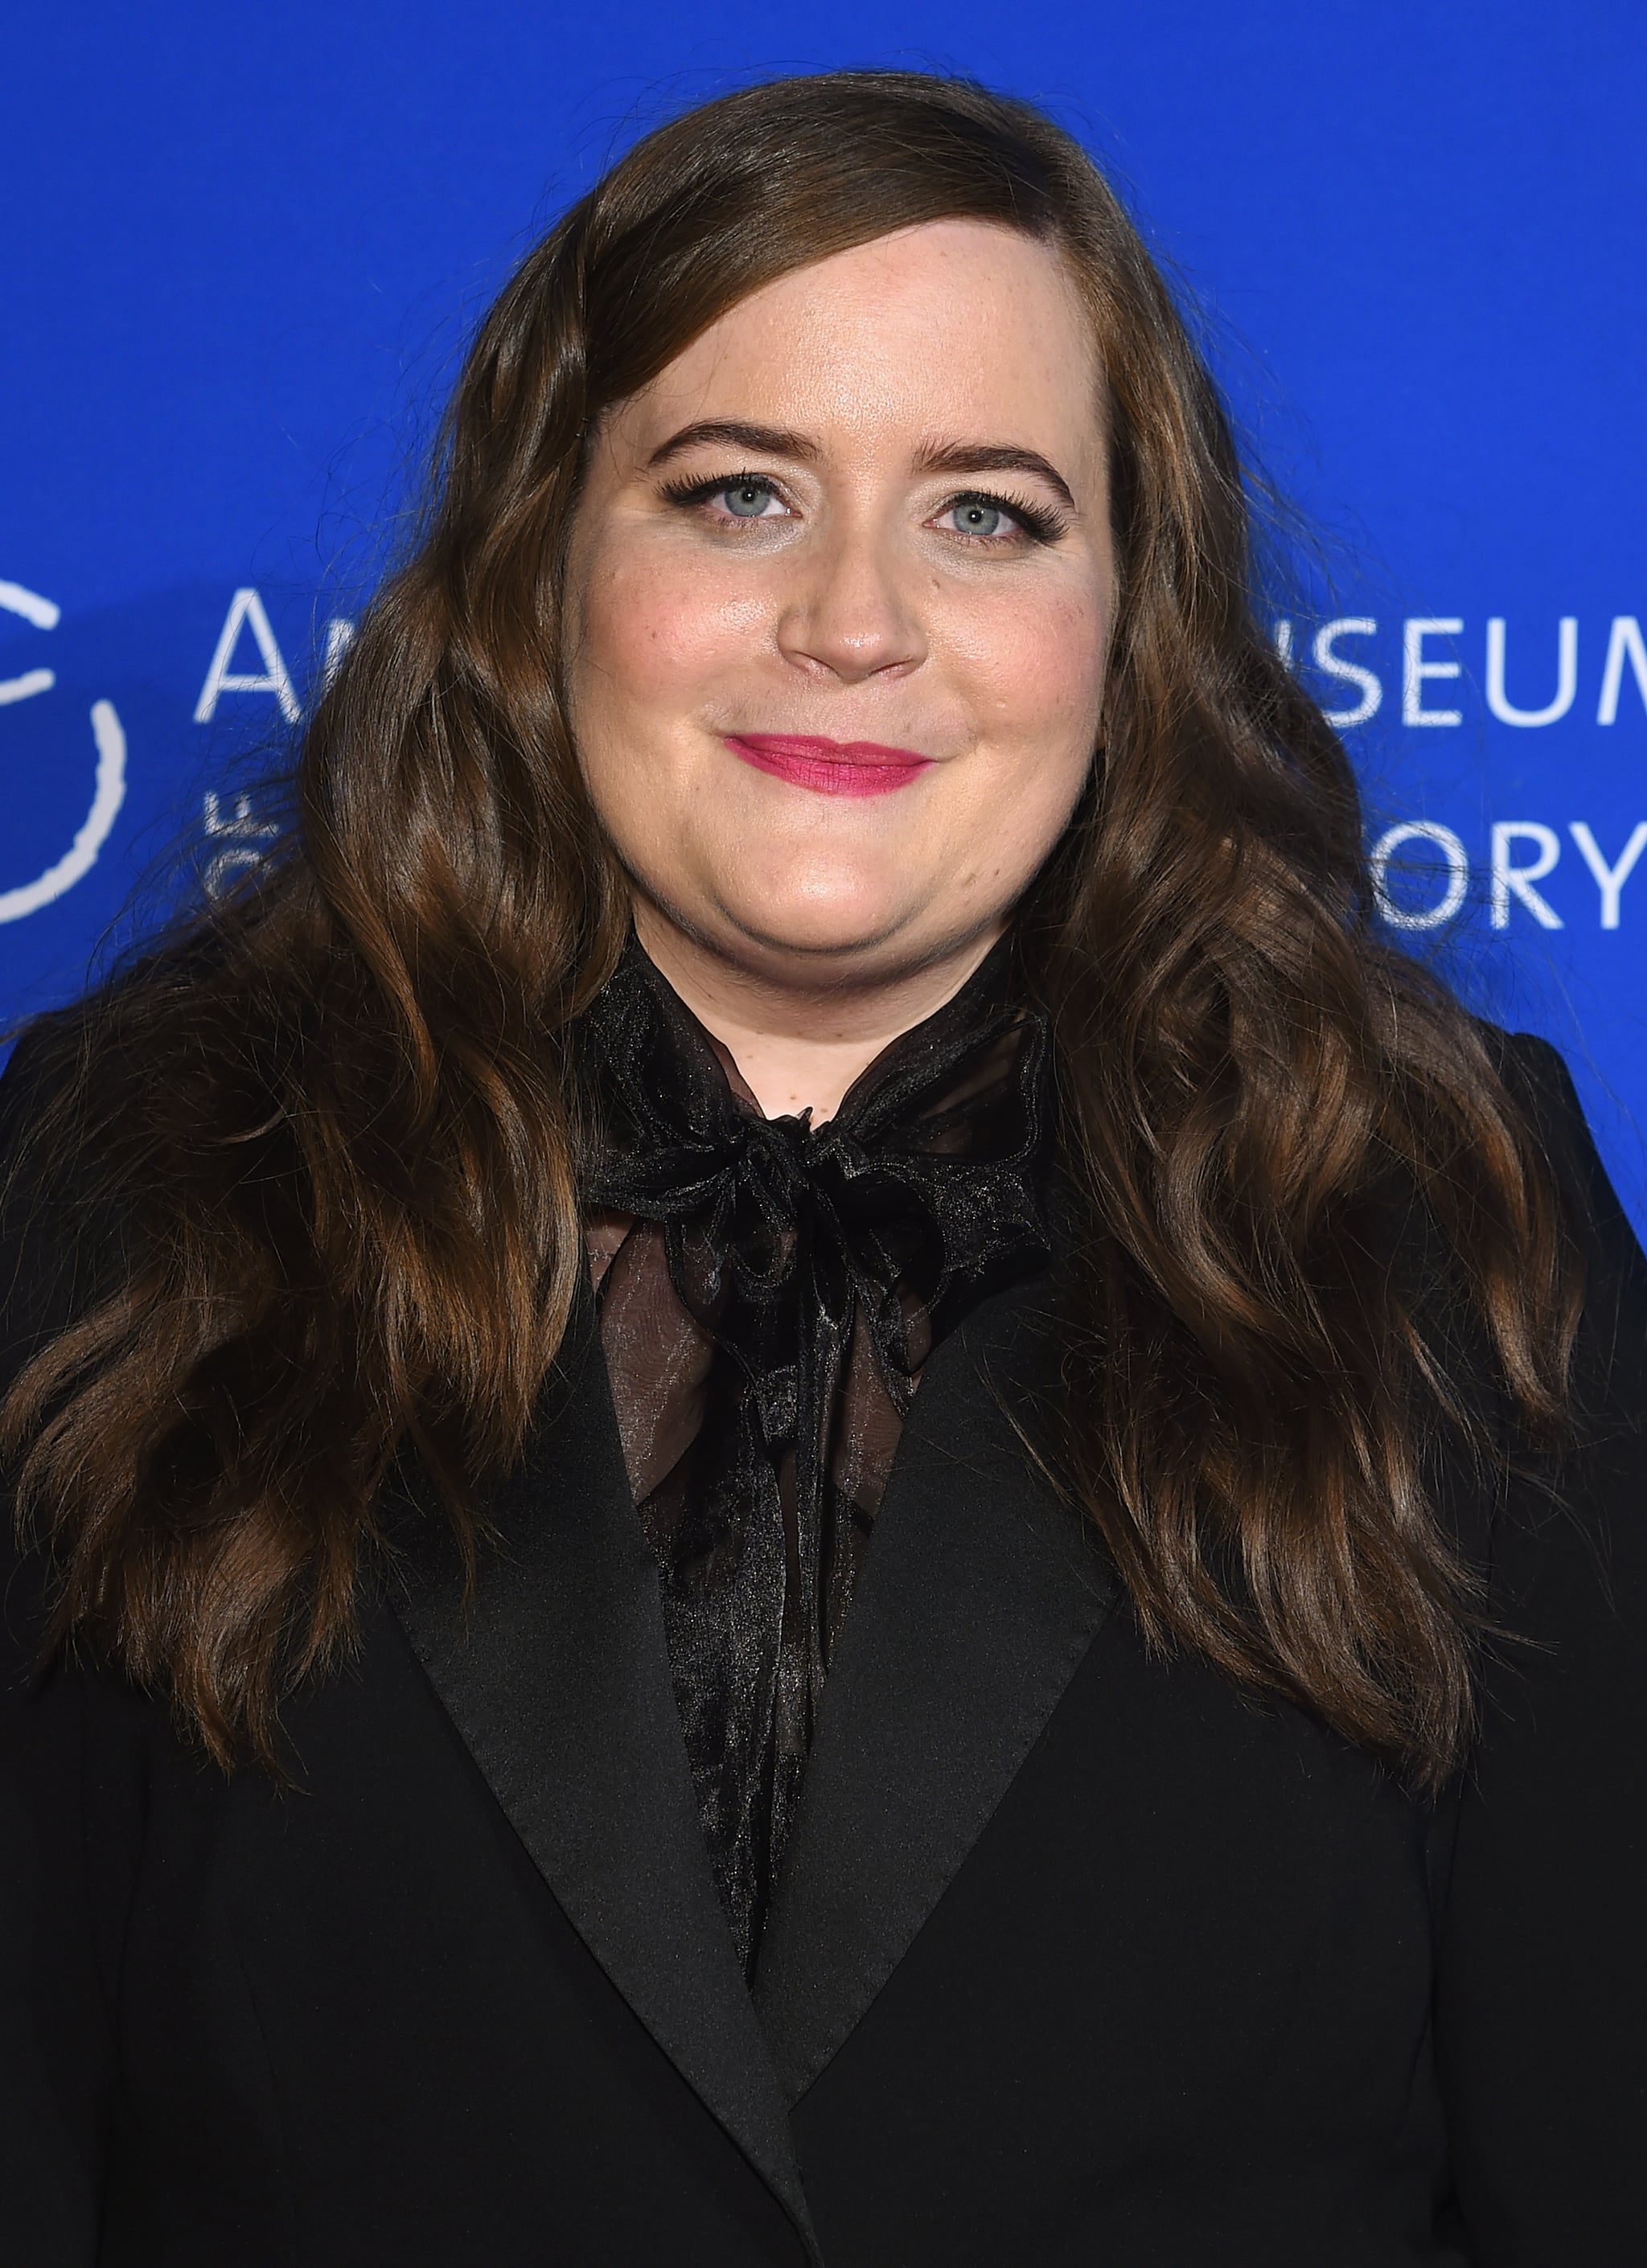 NEW YORK, NY - NOVEMBER 30:  Aidy Bryant attends the American Museum Of Natural History's 2017 Museum Gala at American Museum of Natural History on November 30, 2017 in New York City.  (Photo by Jamie McCarthy/Getty Images)